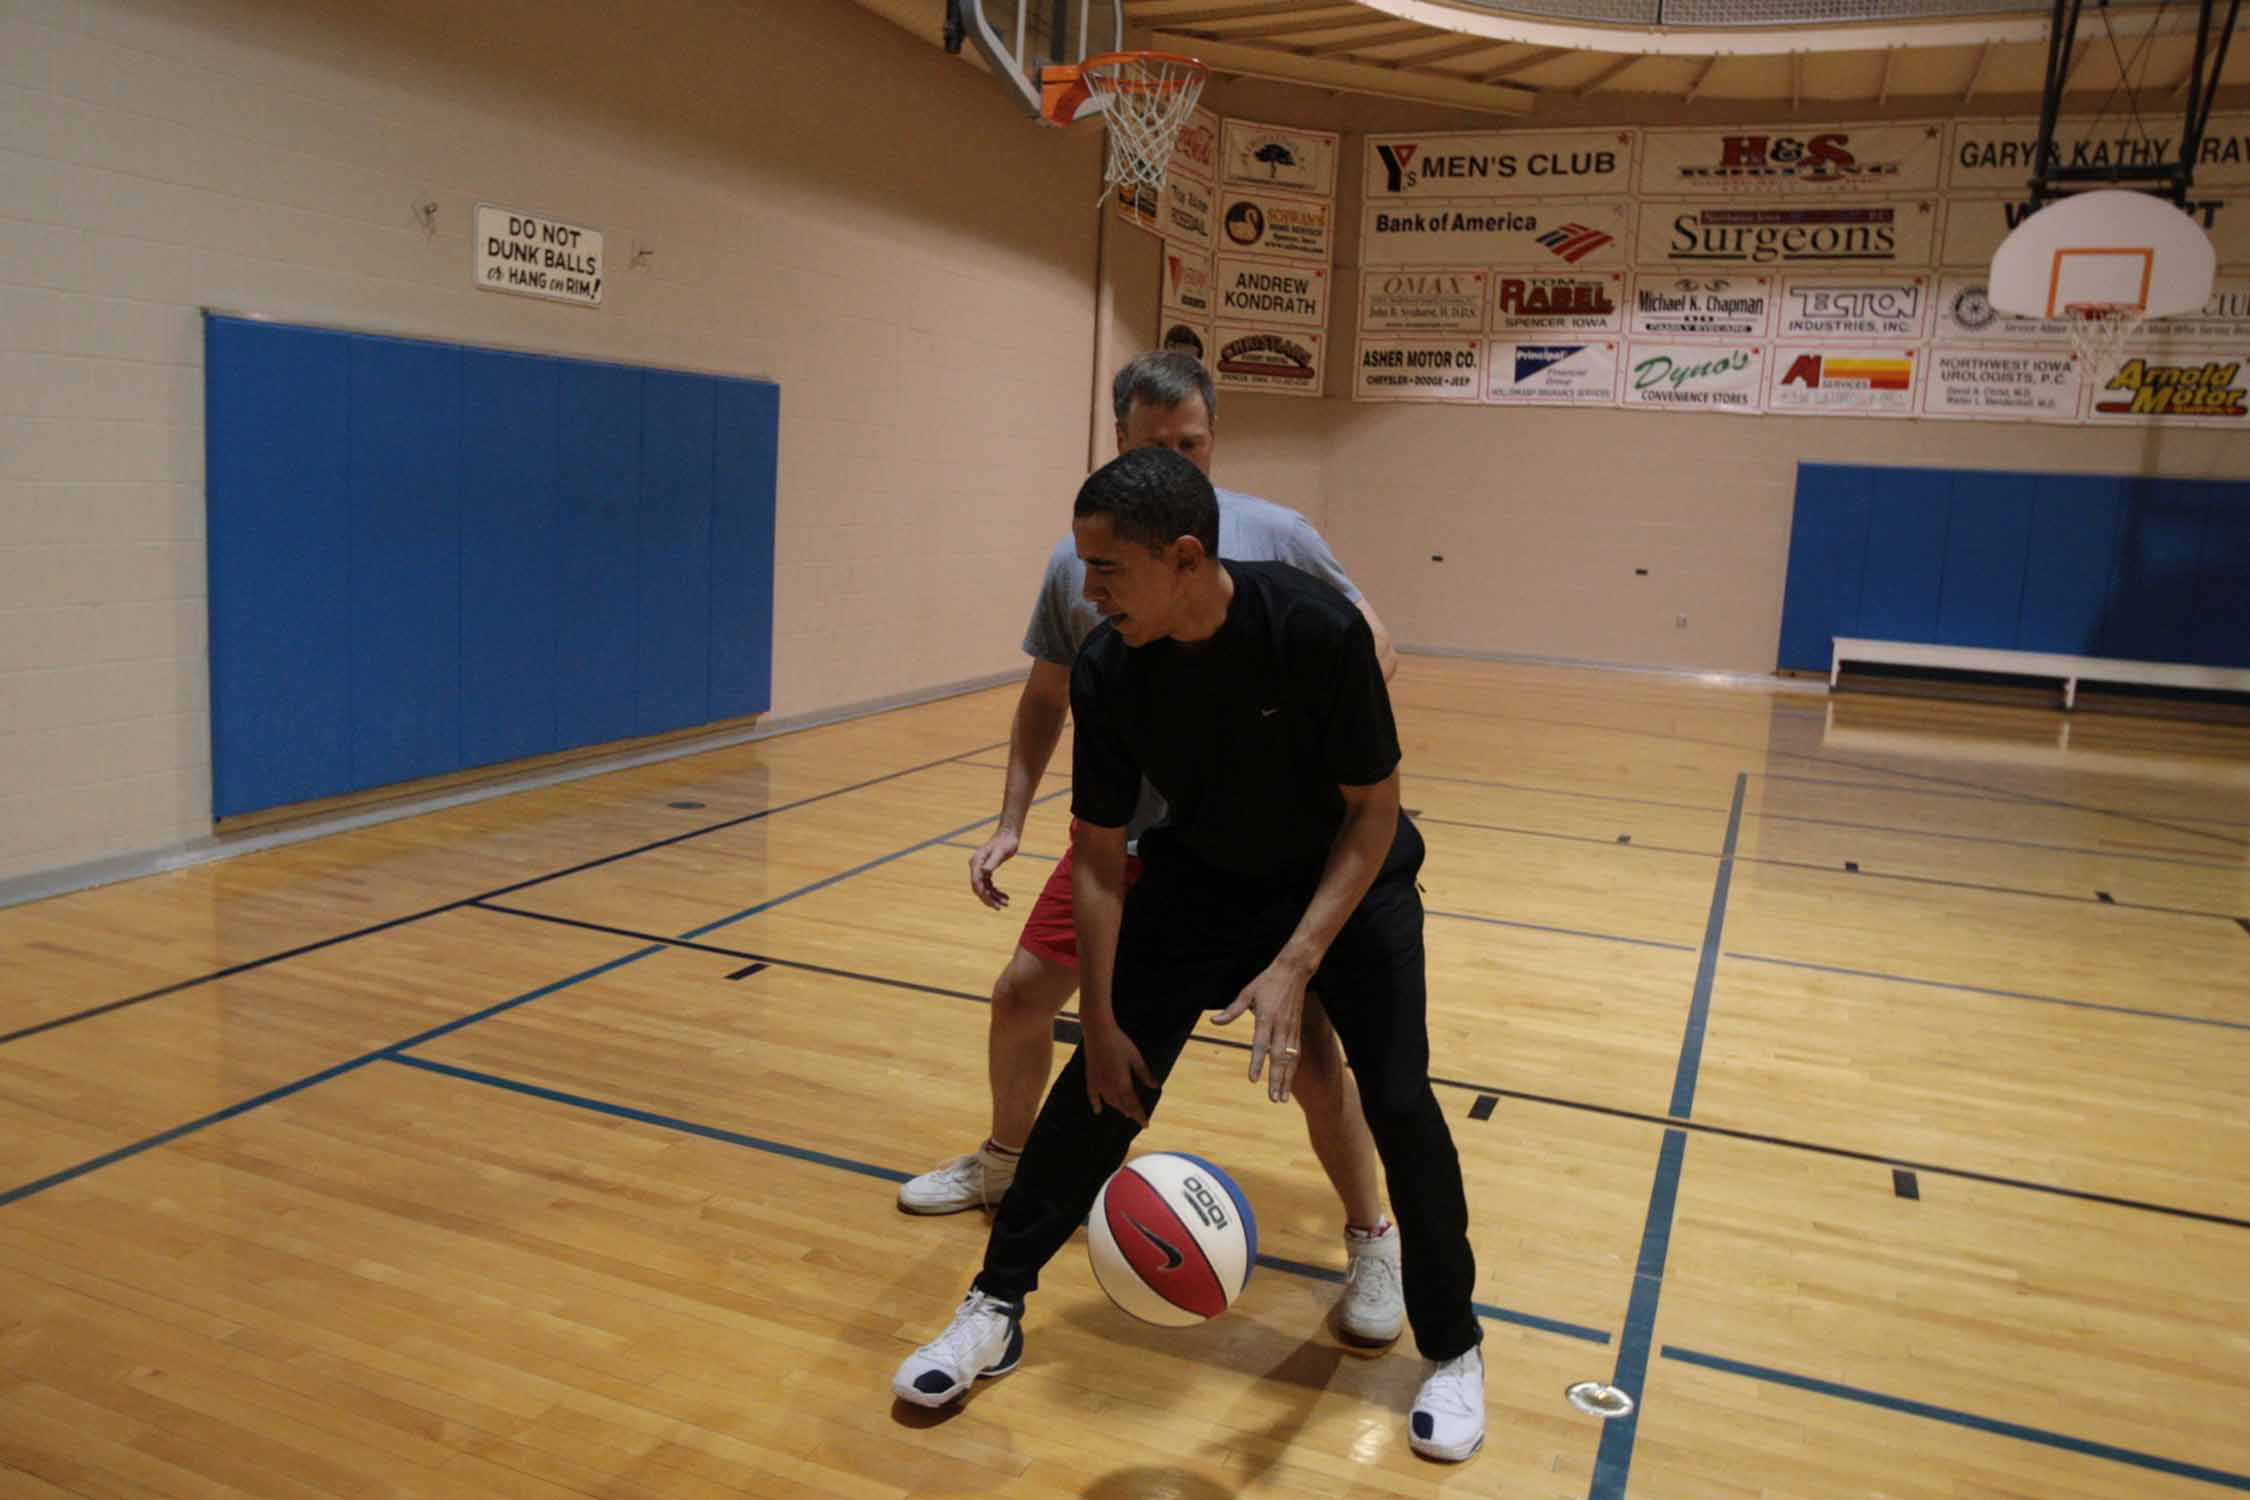 Barack Obama backing his man down in the post in 2007.